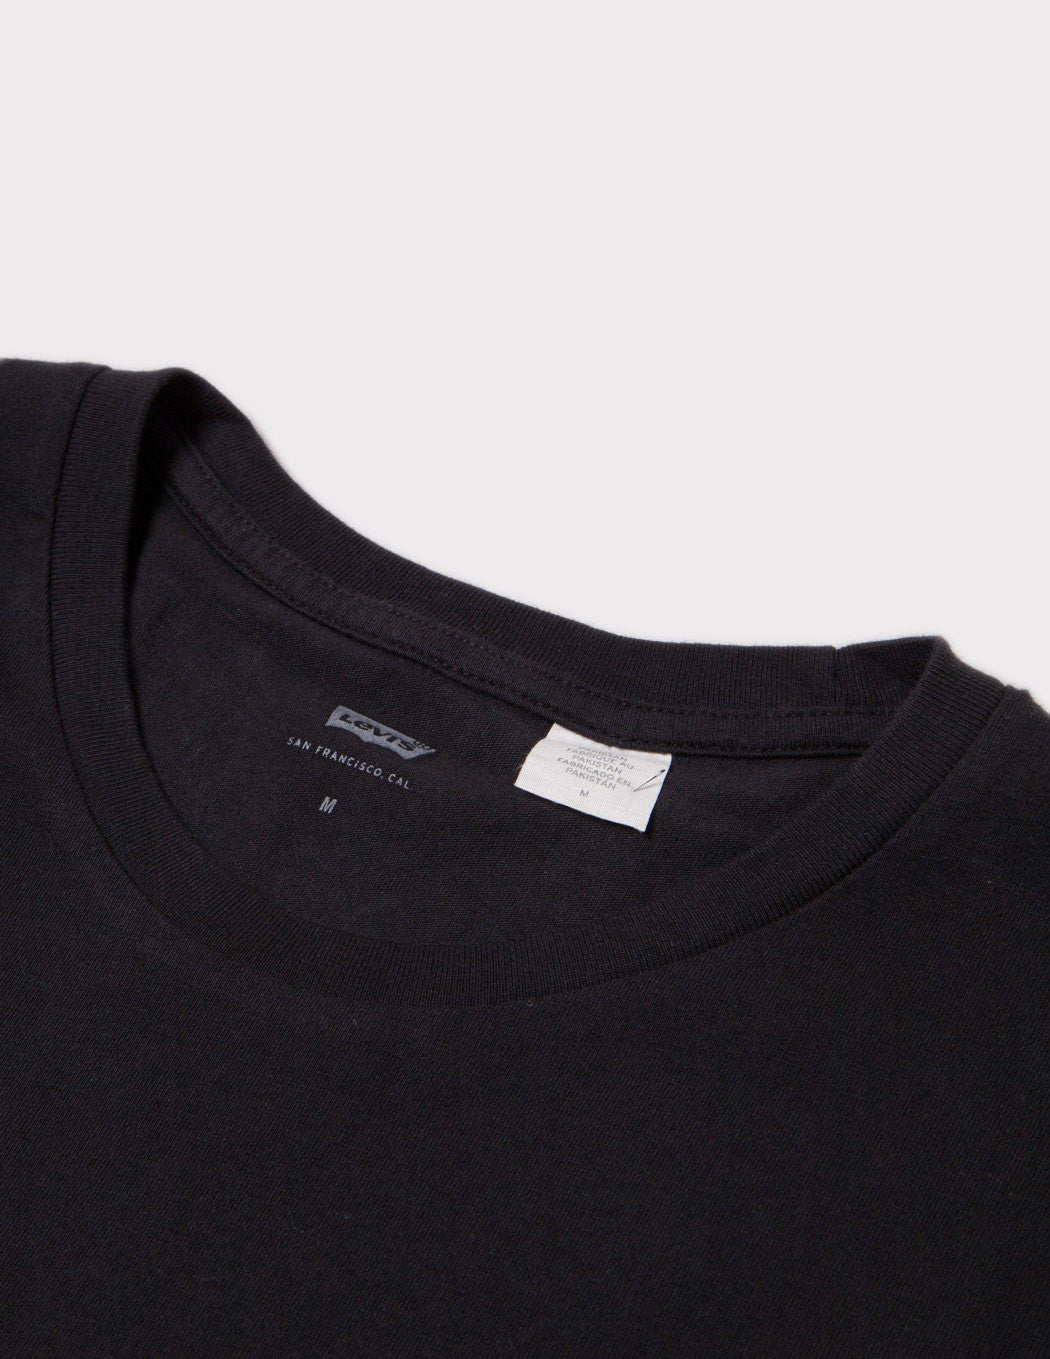 Levis Woodmark Print T-Shirt - Black